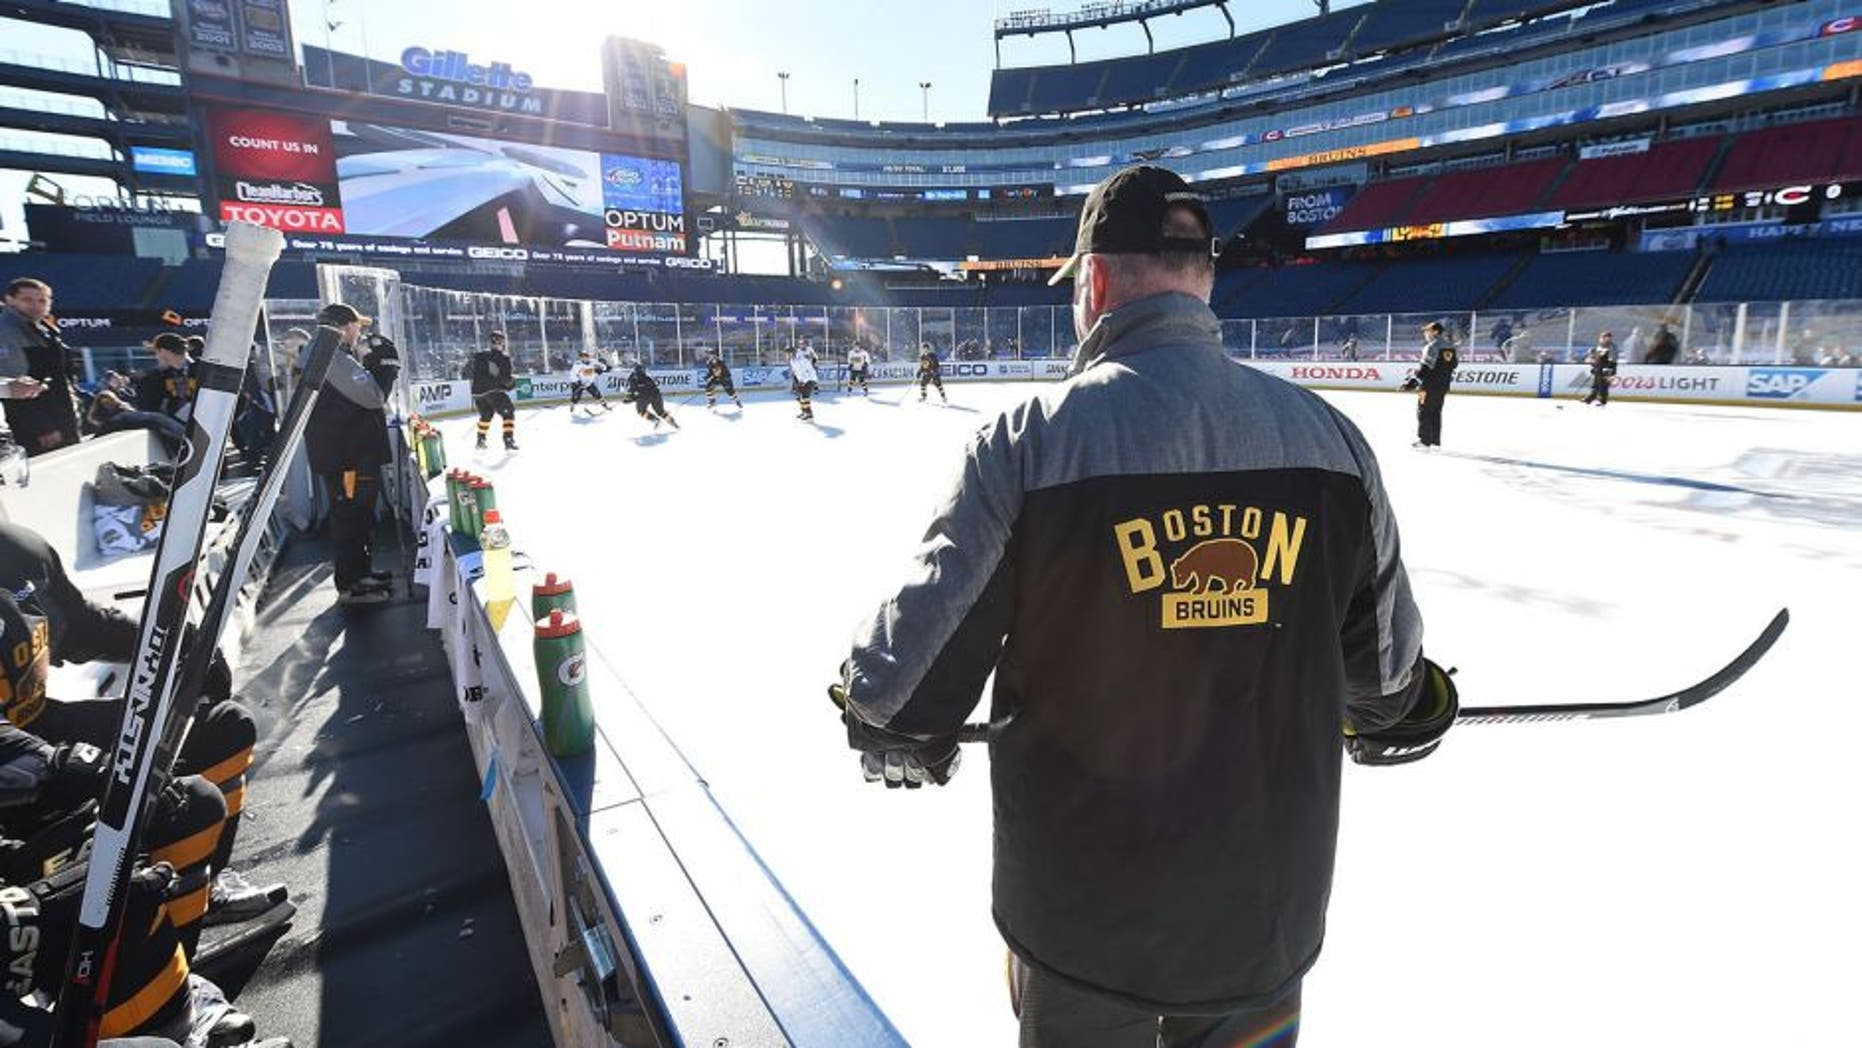 FOXBORO, MA - DECEMBER 31: Head Coach Claude Julien of the Boston Bruins (R) looks on during team practice as part of the 2016 Bridgestone NHL Classic at Gillette Stadium on December 31, 2015 in Foxboro, Massachusetts. The 2016 Bridgestone NHL Winter Classic will take place on New Year's Day with the Montreal Canadiens playing the Boston Bruins. (Photo by Brian Babineau/NHLI via Getty Images)